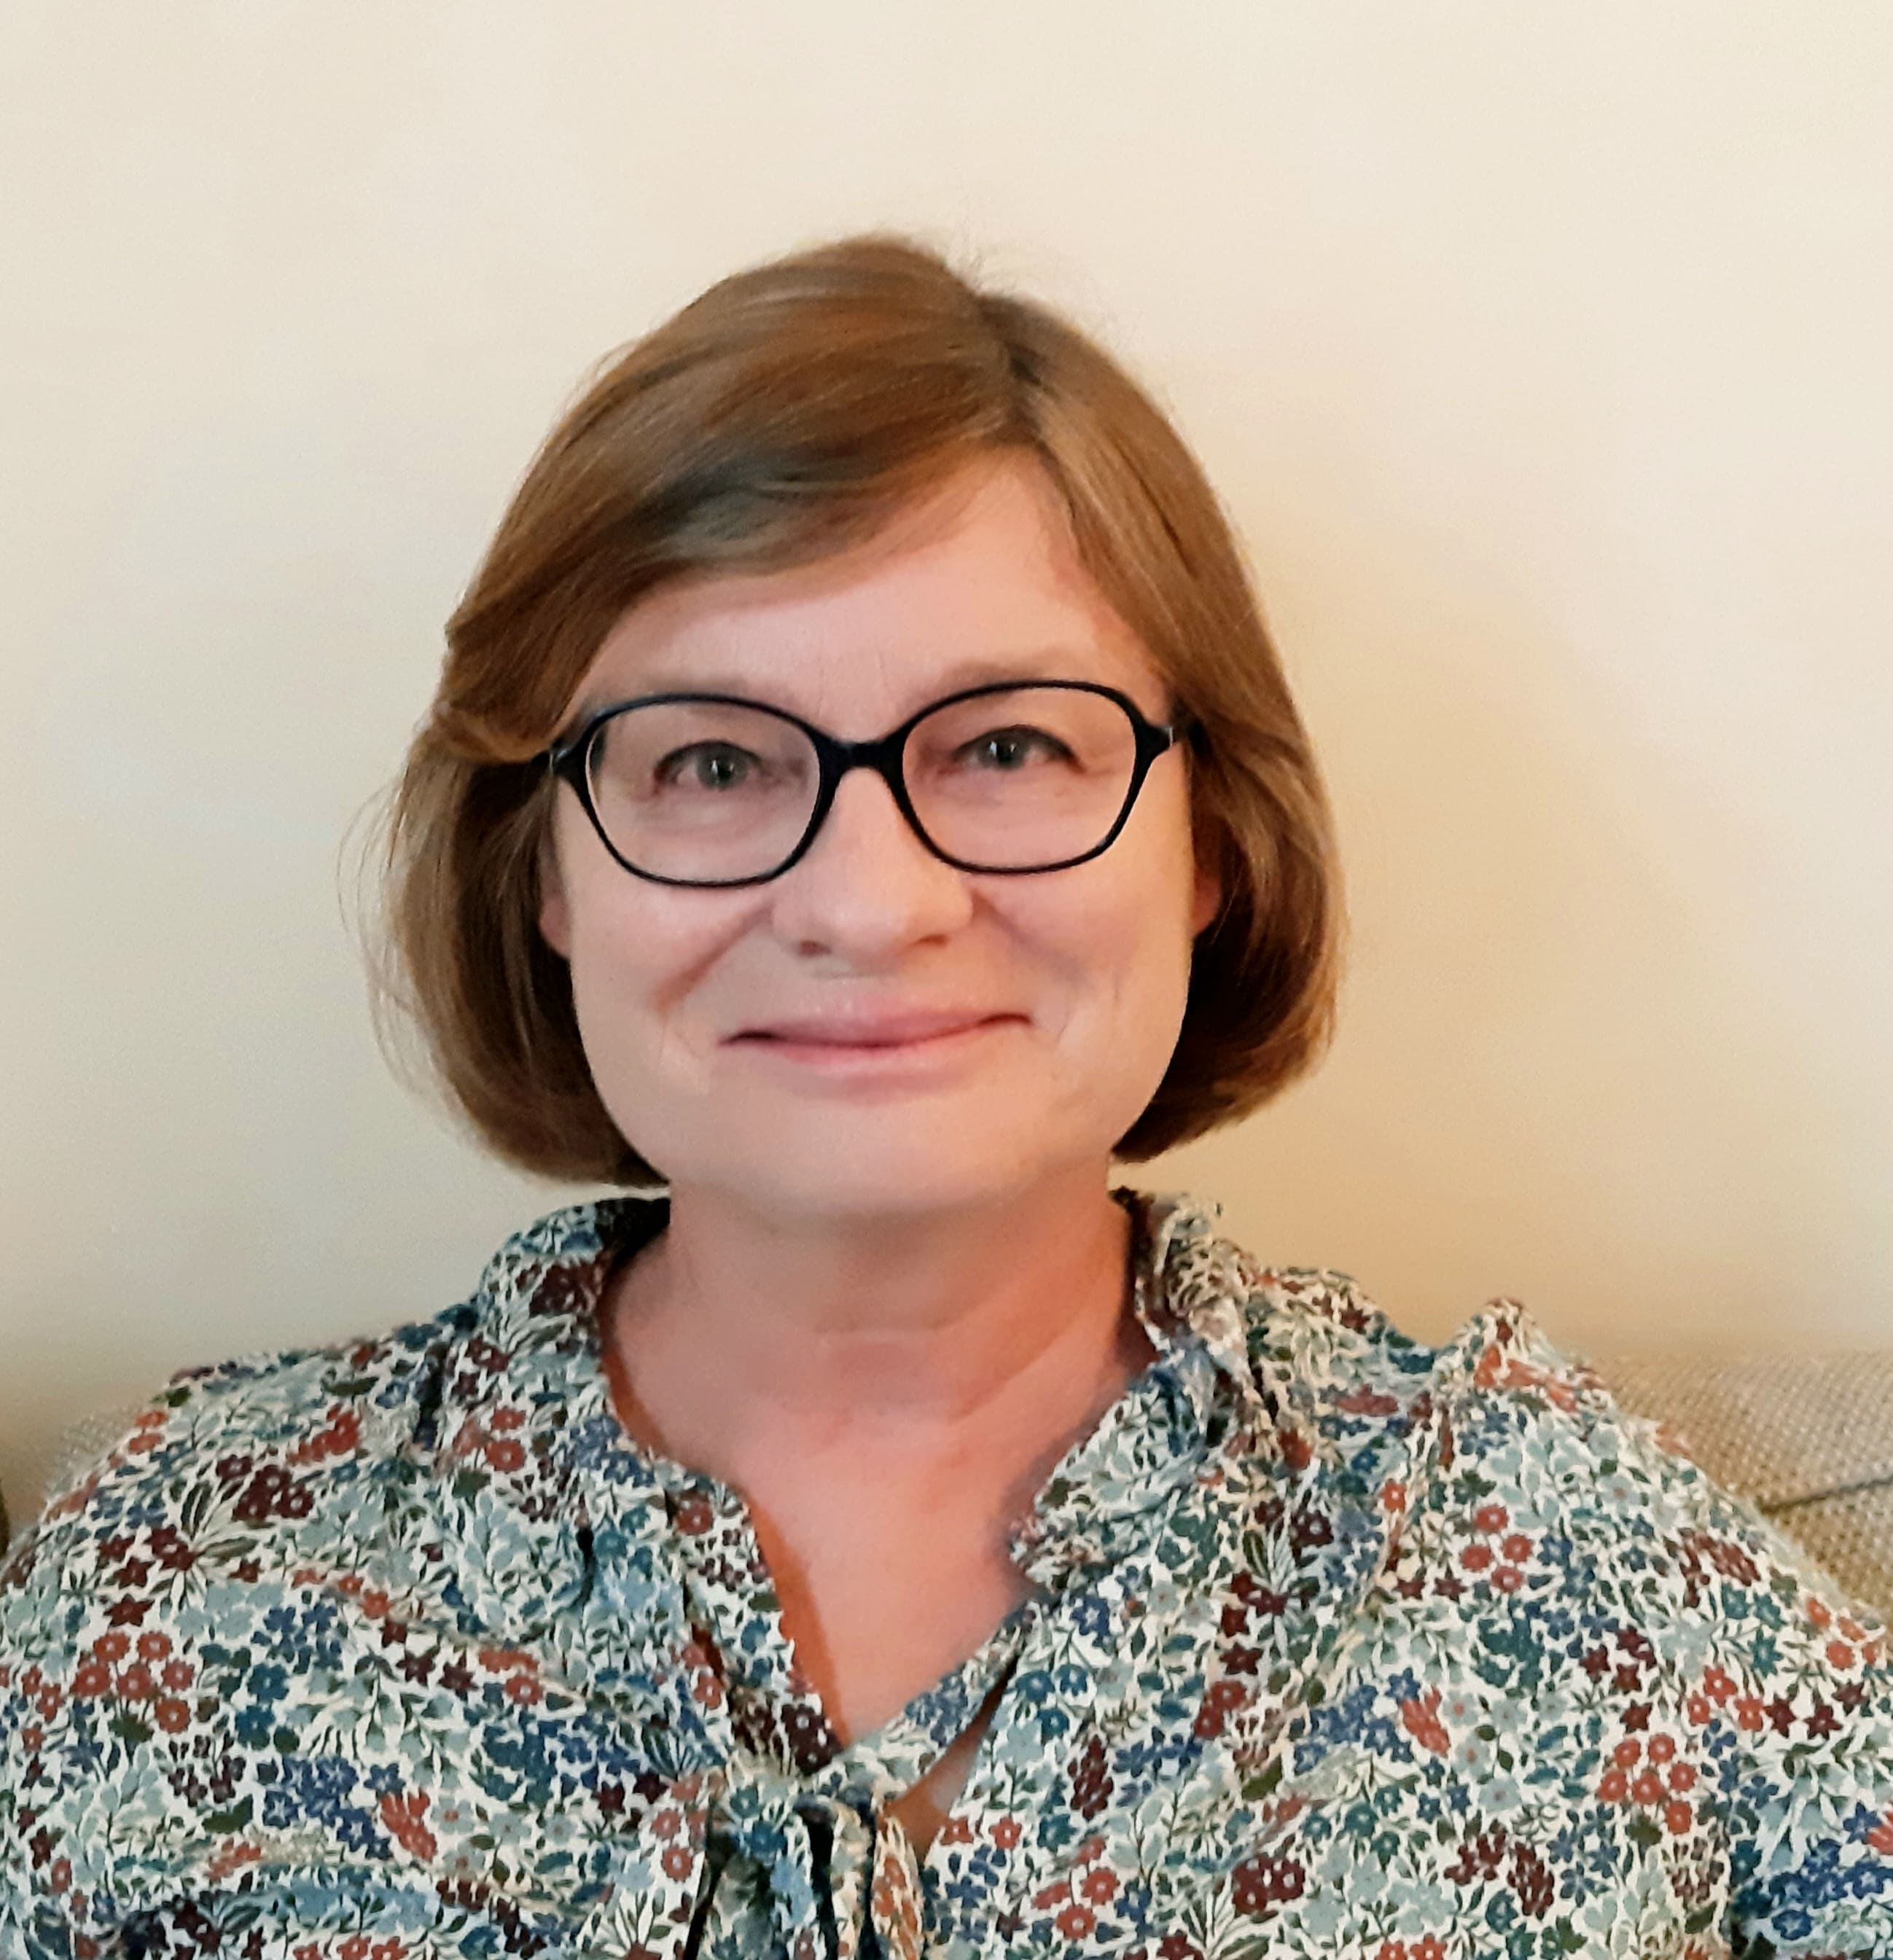 Prof. Marie-Vic Ozouf-Marignier, TEMA+ scientific coordinator at EHESS was conferred the title of honorary doctor by the Eötvös Loránd University of Budapest in October 2020